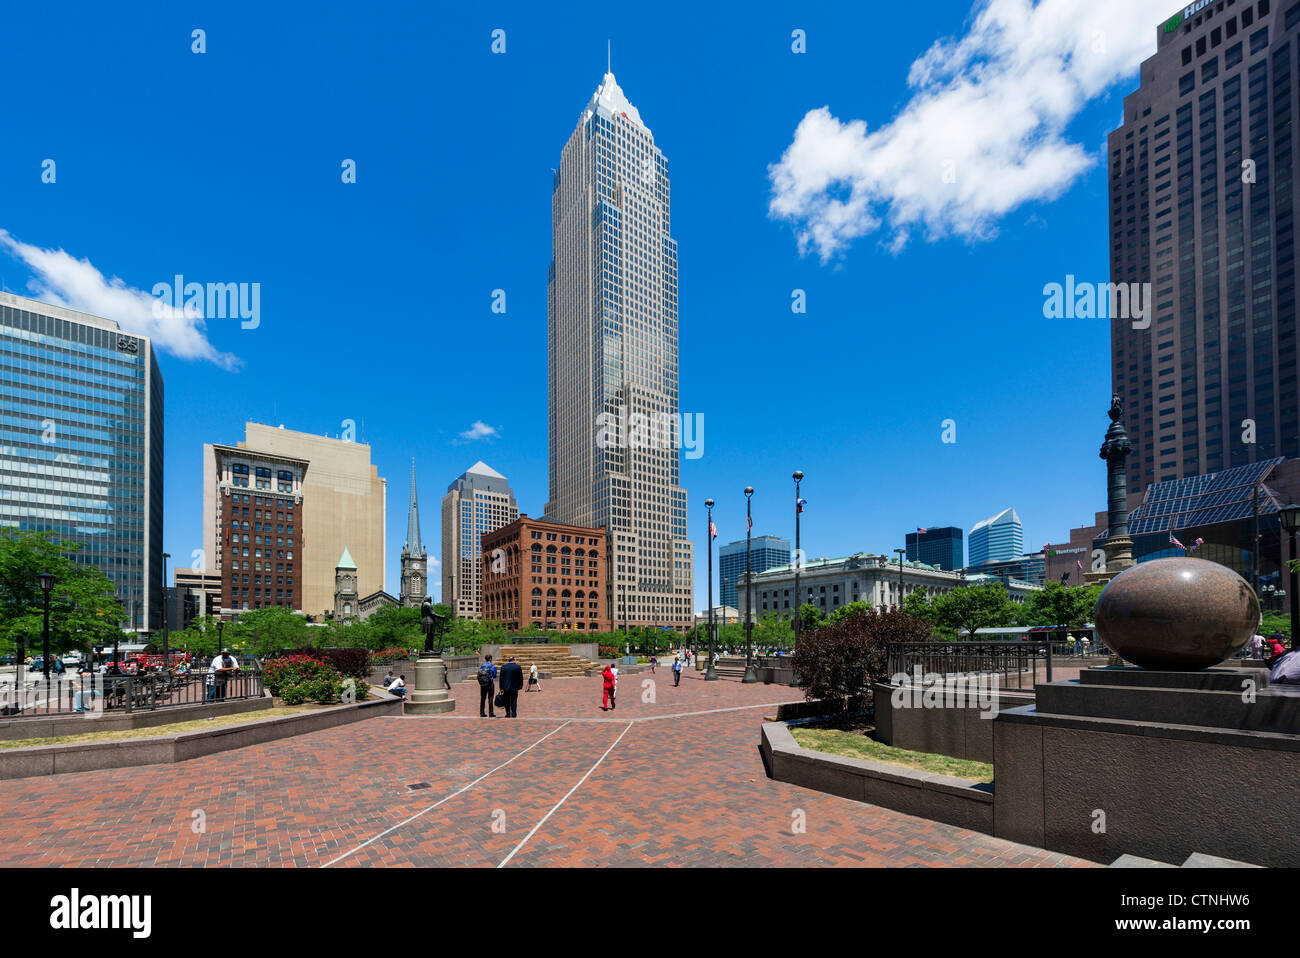 Public Square in the center of downtown Cleveland, Ohio, USA - Stock Image